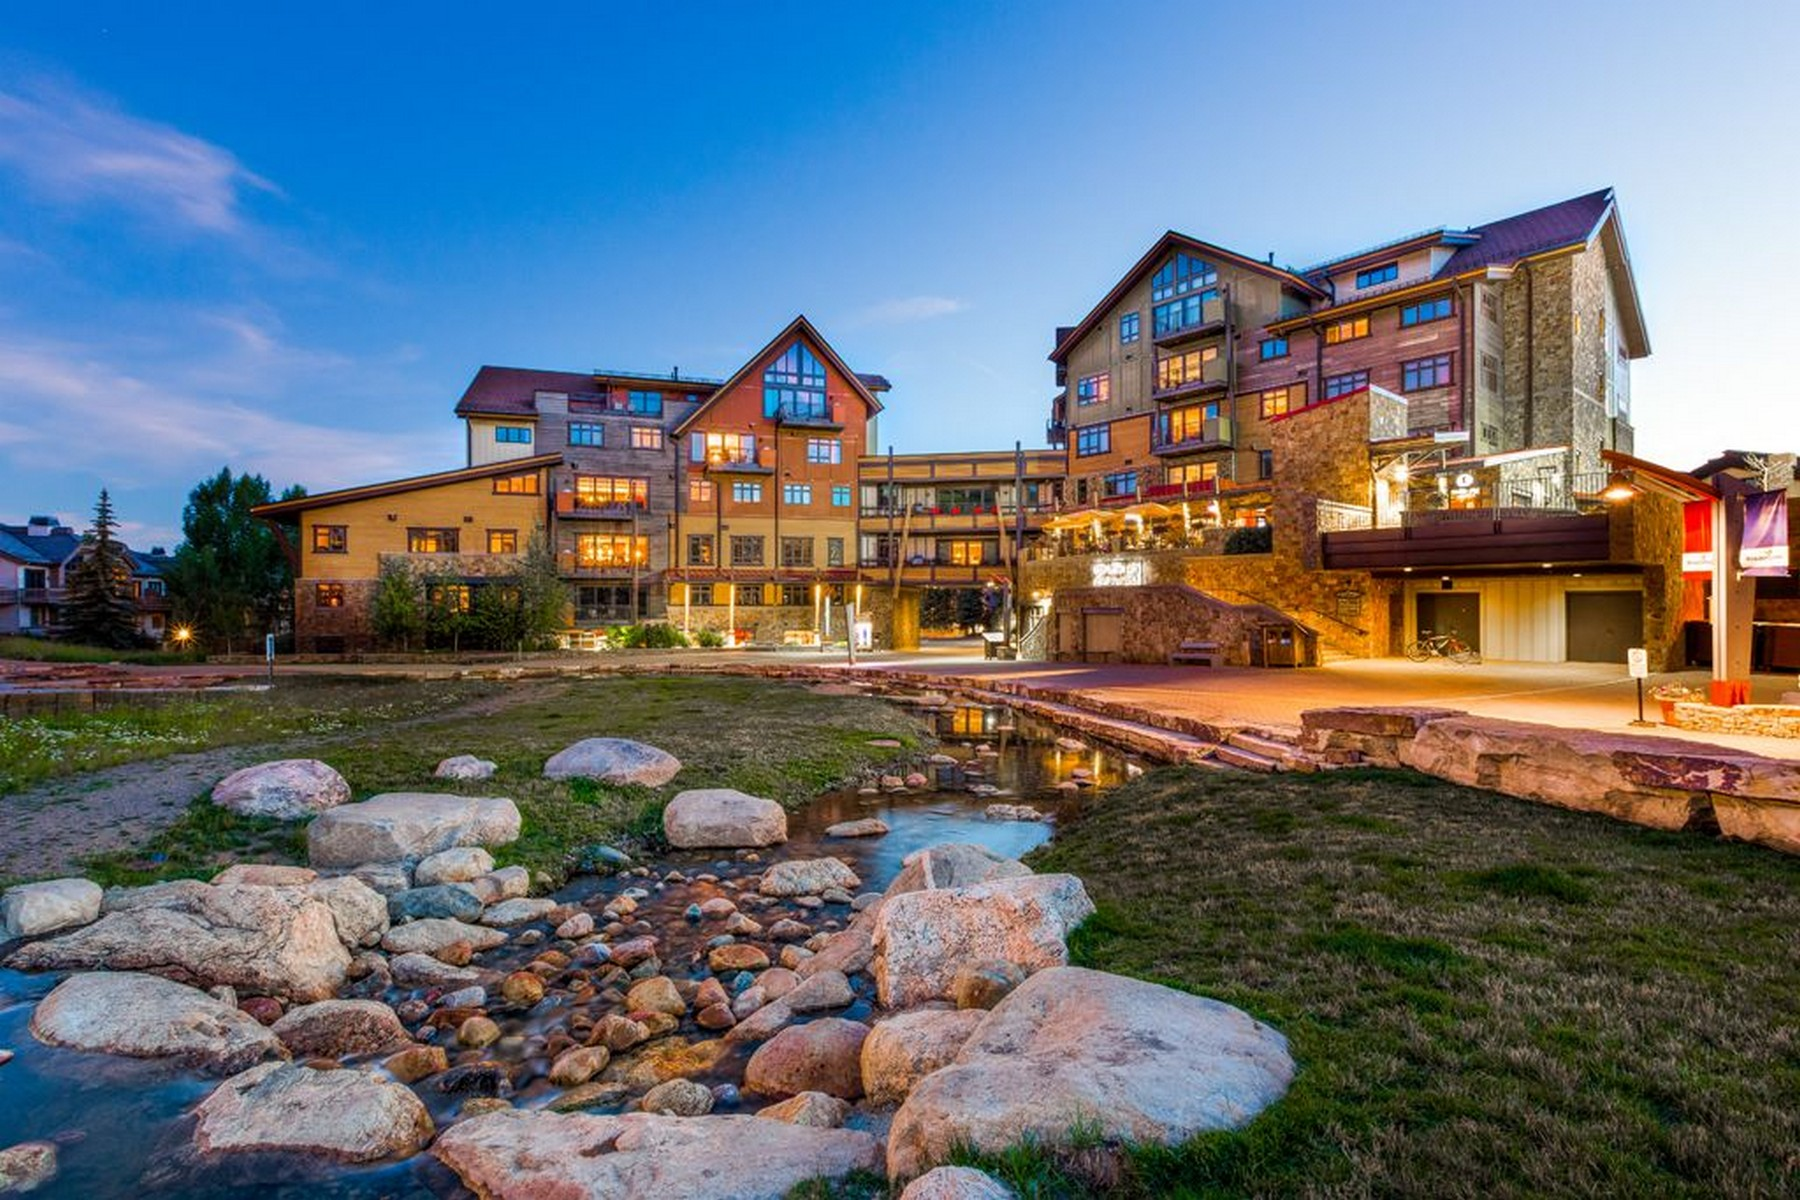 ملكية جزئية للـ Sale في Luxury Slopeside Resort 2250 Apres Ski Way 405-IV, Steamboat Springs, Colorado, 80487 United States